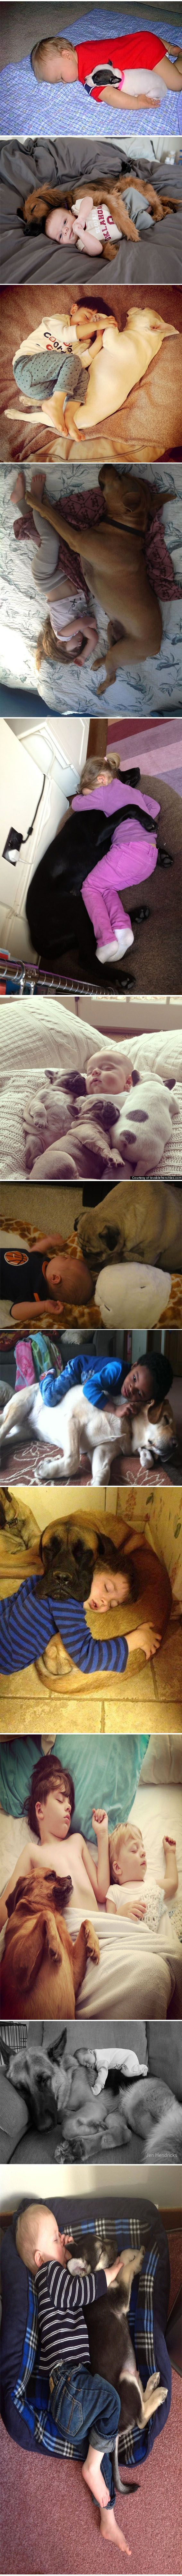 i don't want a dog but oh my, these pictures are everywhere right now and they're melting my icy heart...: Dogs Kids, Baby Sleeping, Icy Heart, Sweet, Dogs And Kids, Friend, Animal